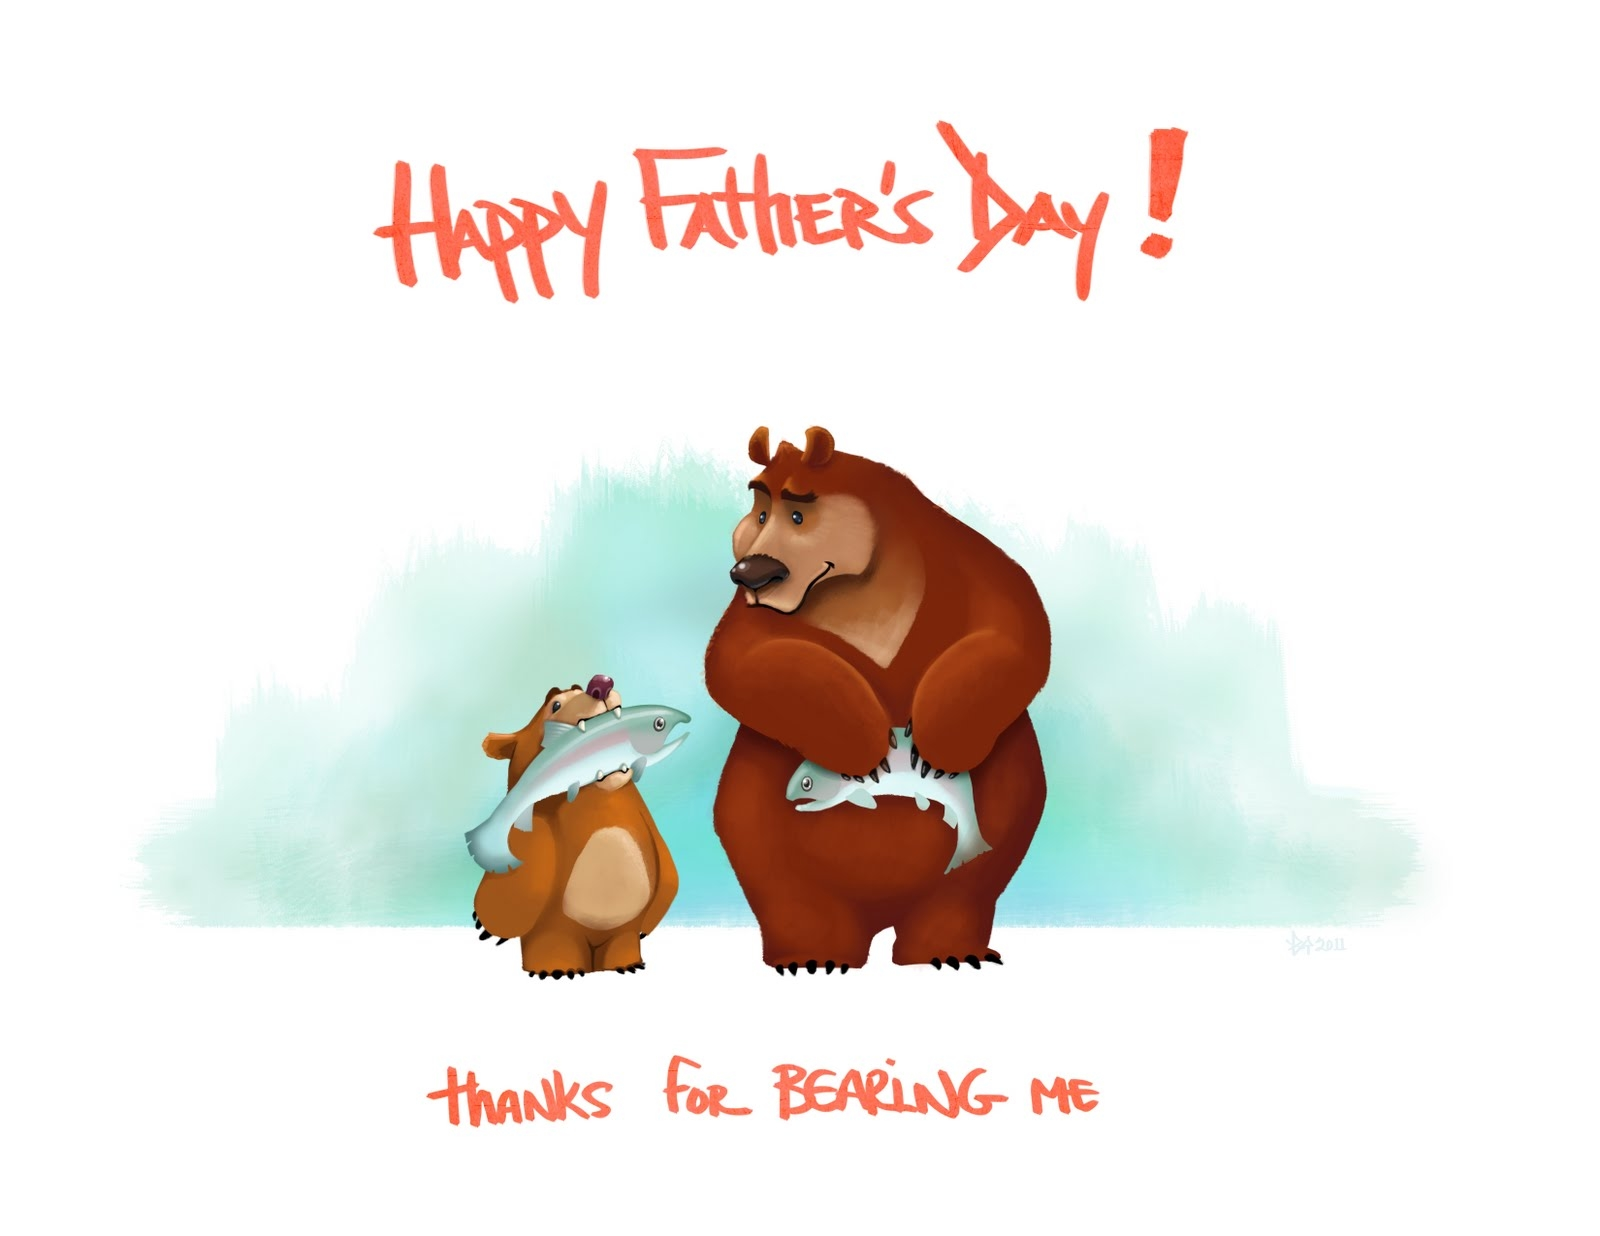 Happy-Fathers-Day-Thanks-For-Bearing-Me